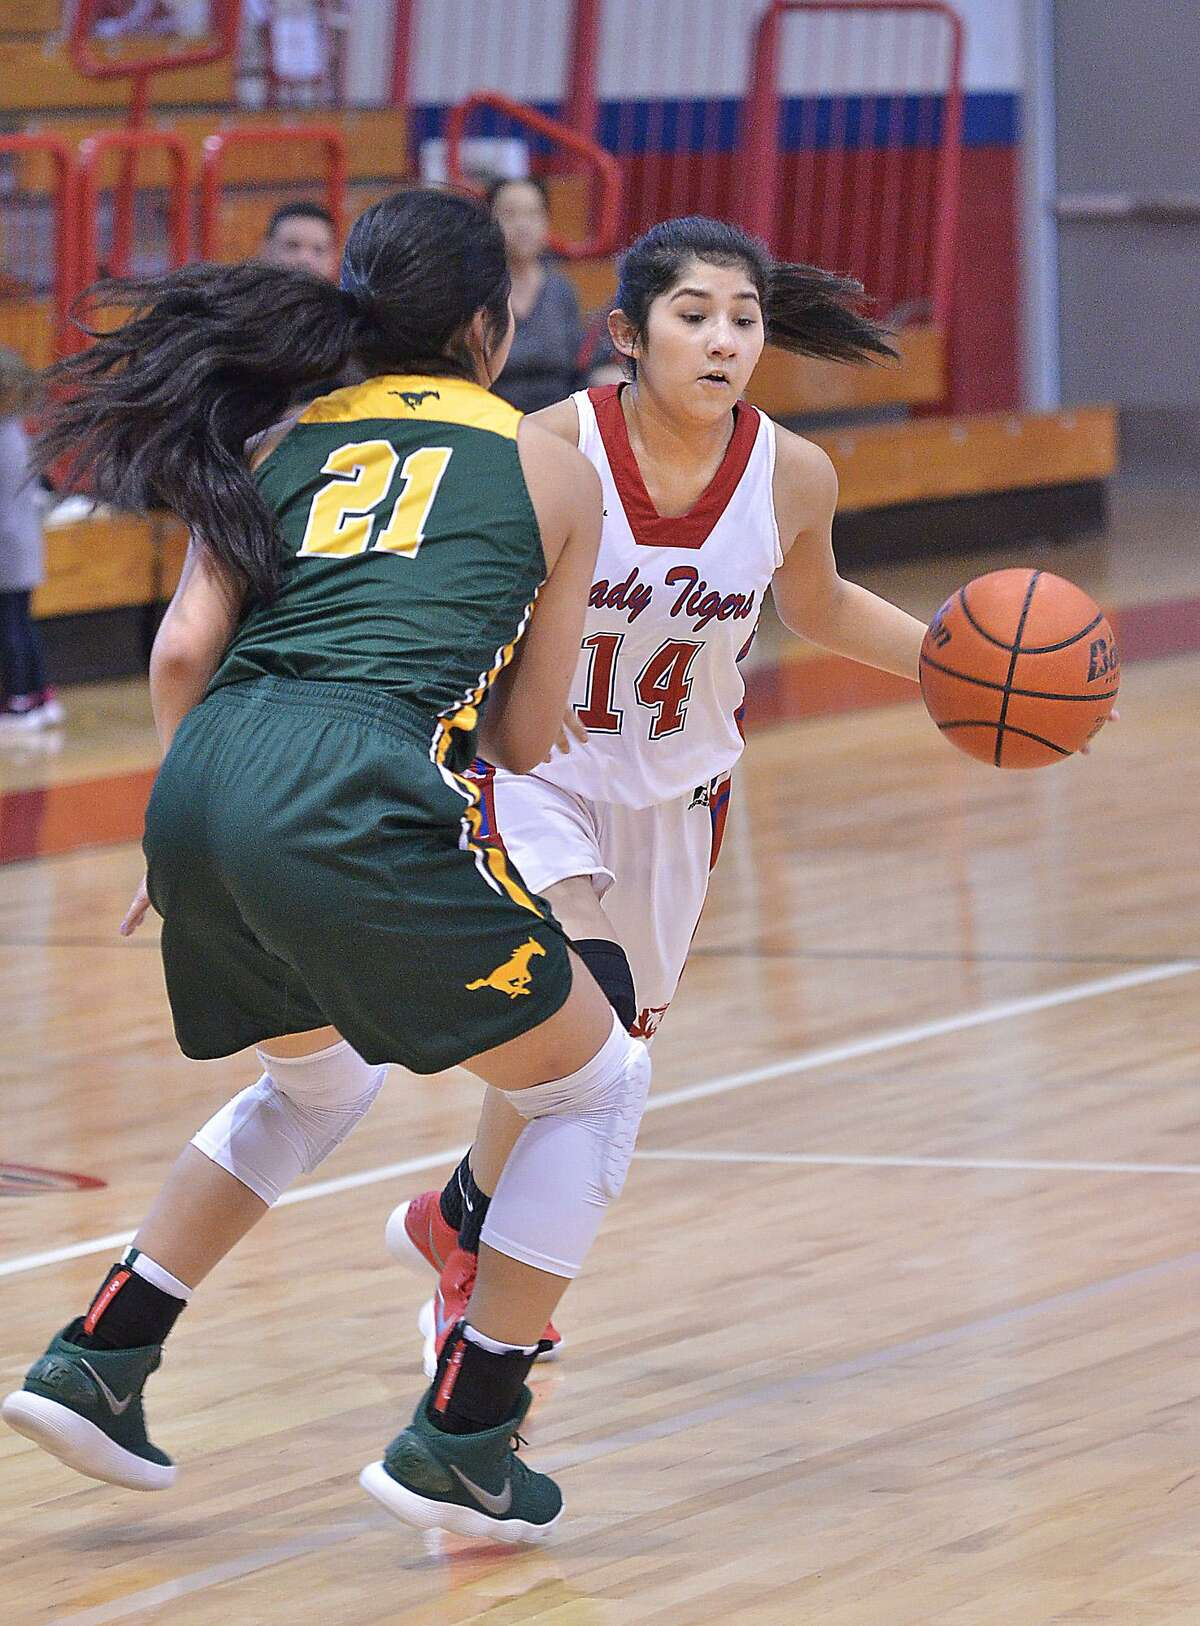 Karma Flores sank the final two free throws of Thursday night's game to clinch a 51-46 victory for Martin over Sharyland to take over fourth place in District 31-5A with five games to play.